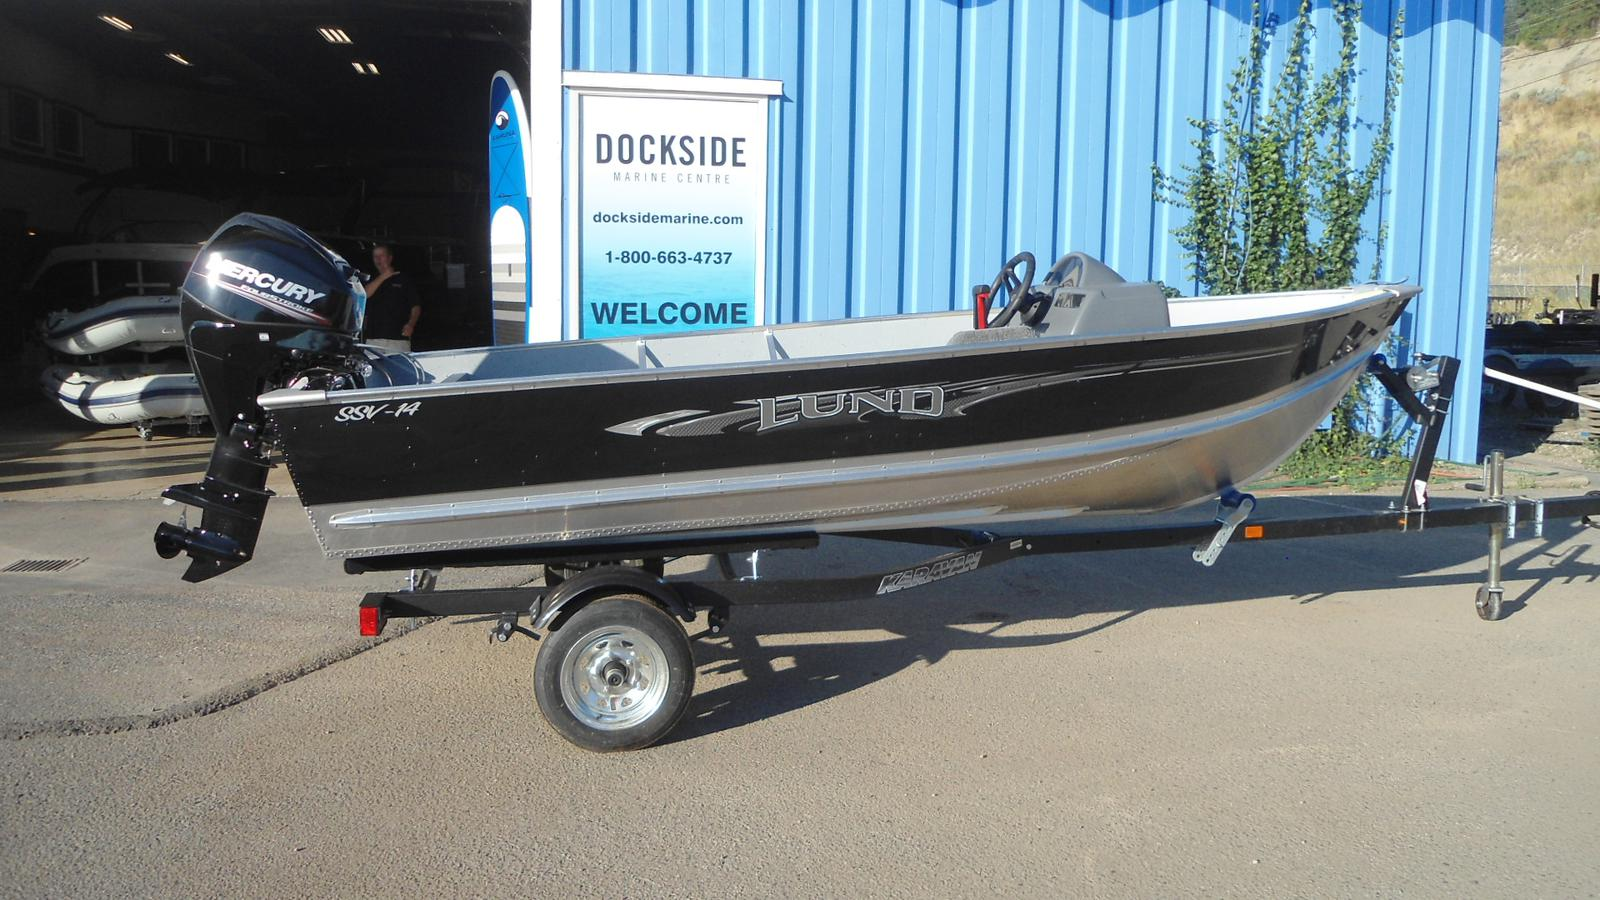 For Sale: 2016 Lund Ssv 14 Side Console 15ft<br/>Dockside Marine Centre, LTD.